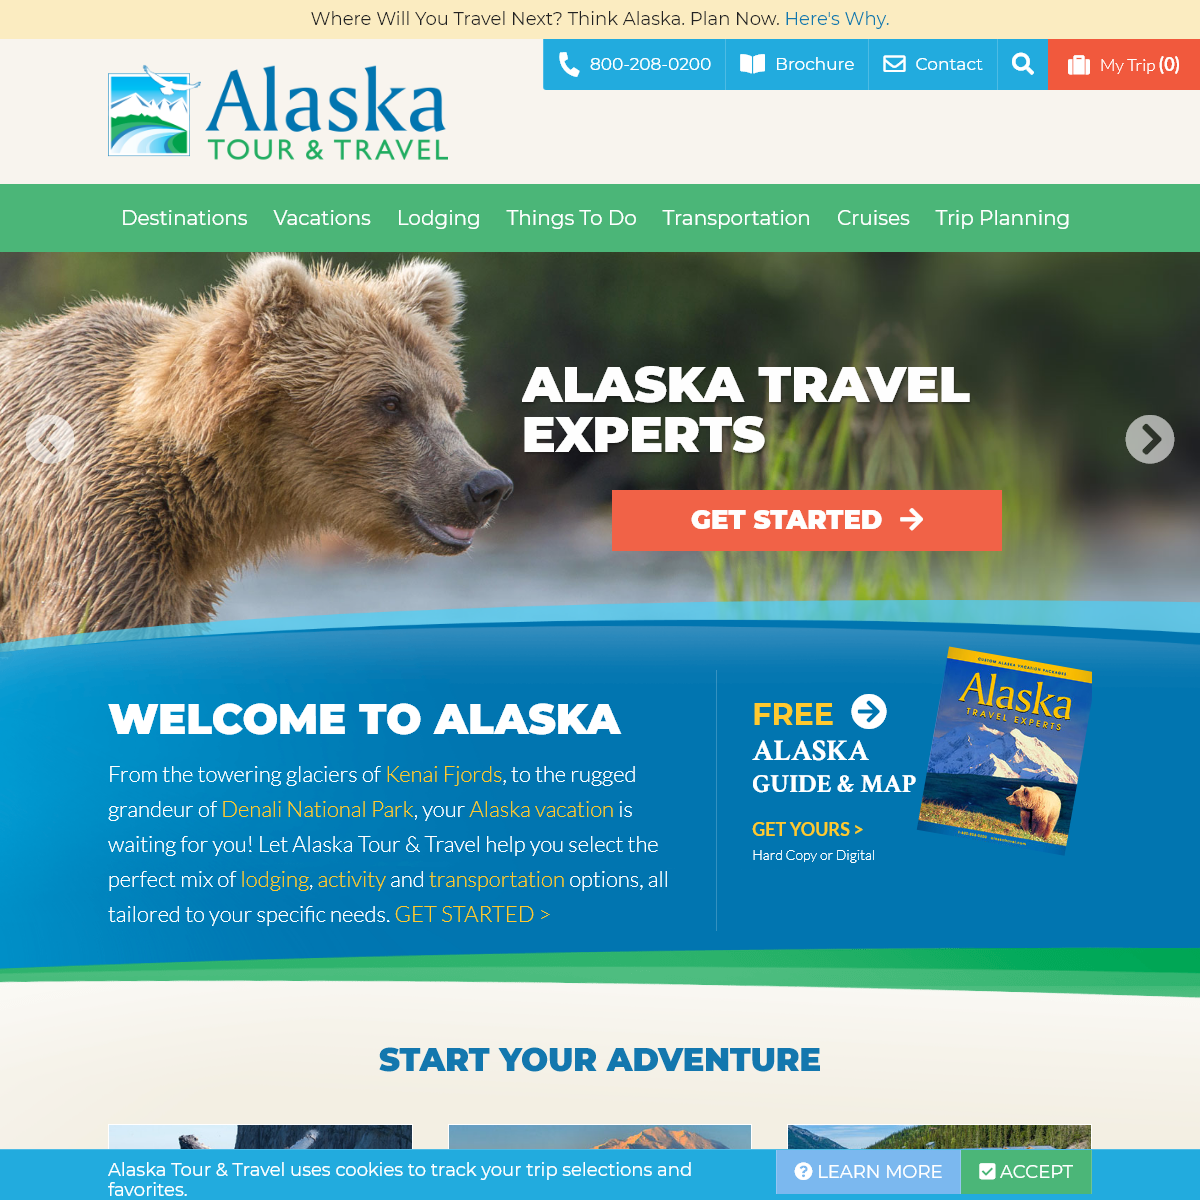 Alaska Tour & Travel - Vacations, Hotels, Tours, Cruises & Railroad Trips